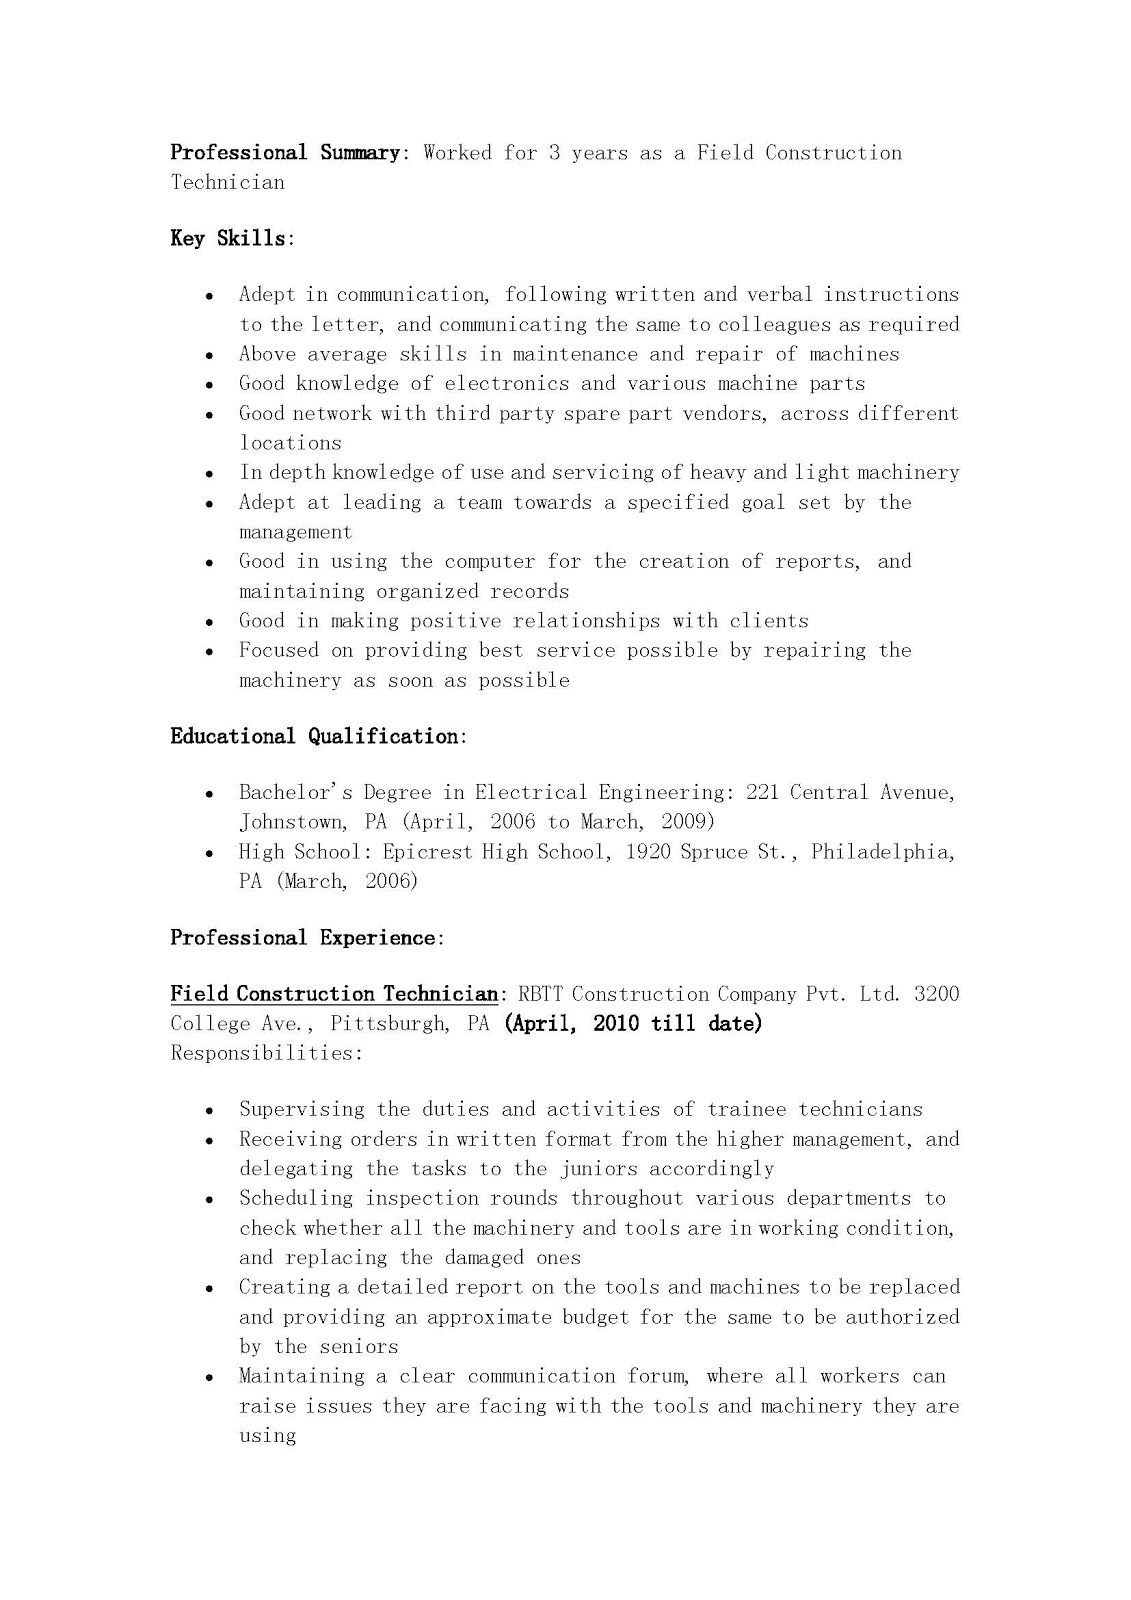 resume sles field construction technician resume